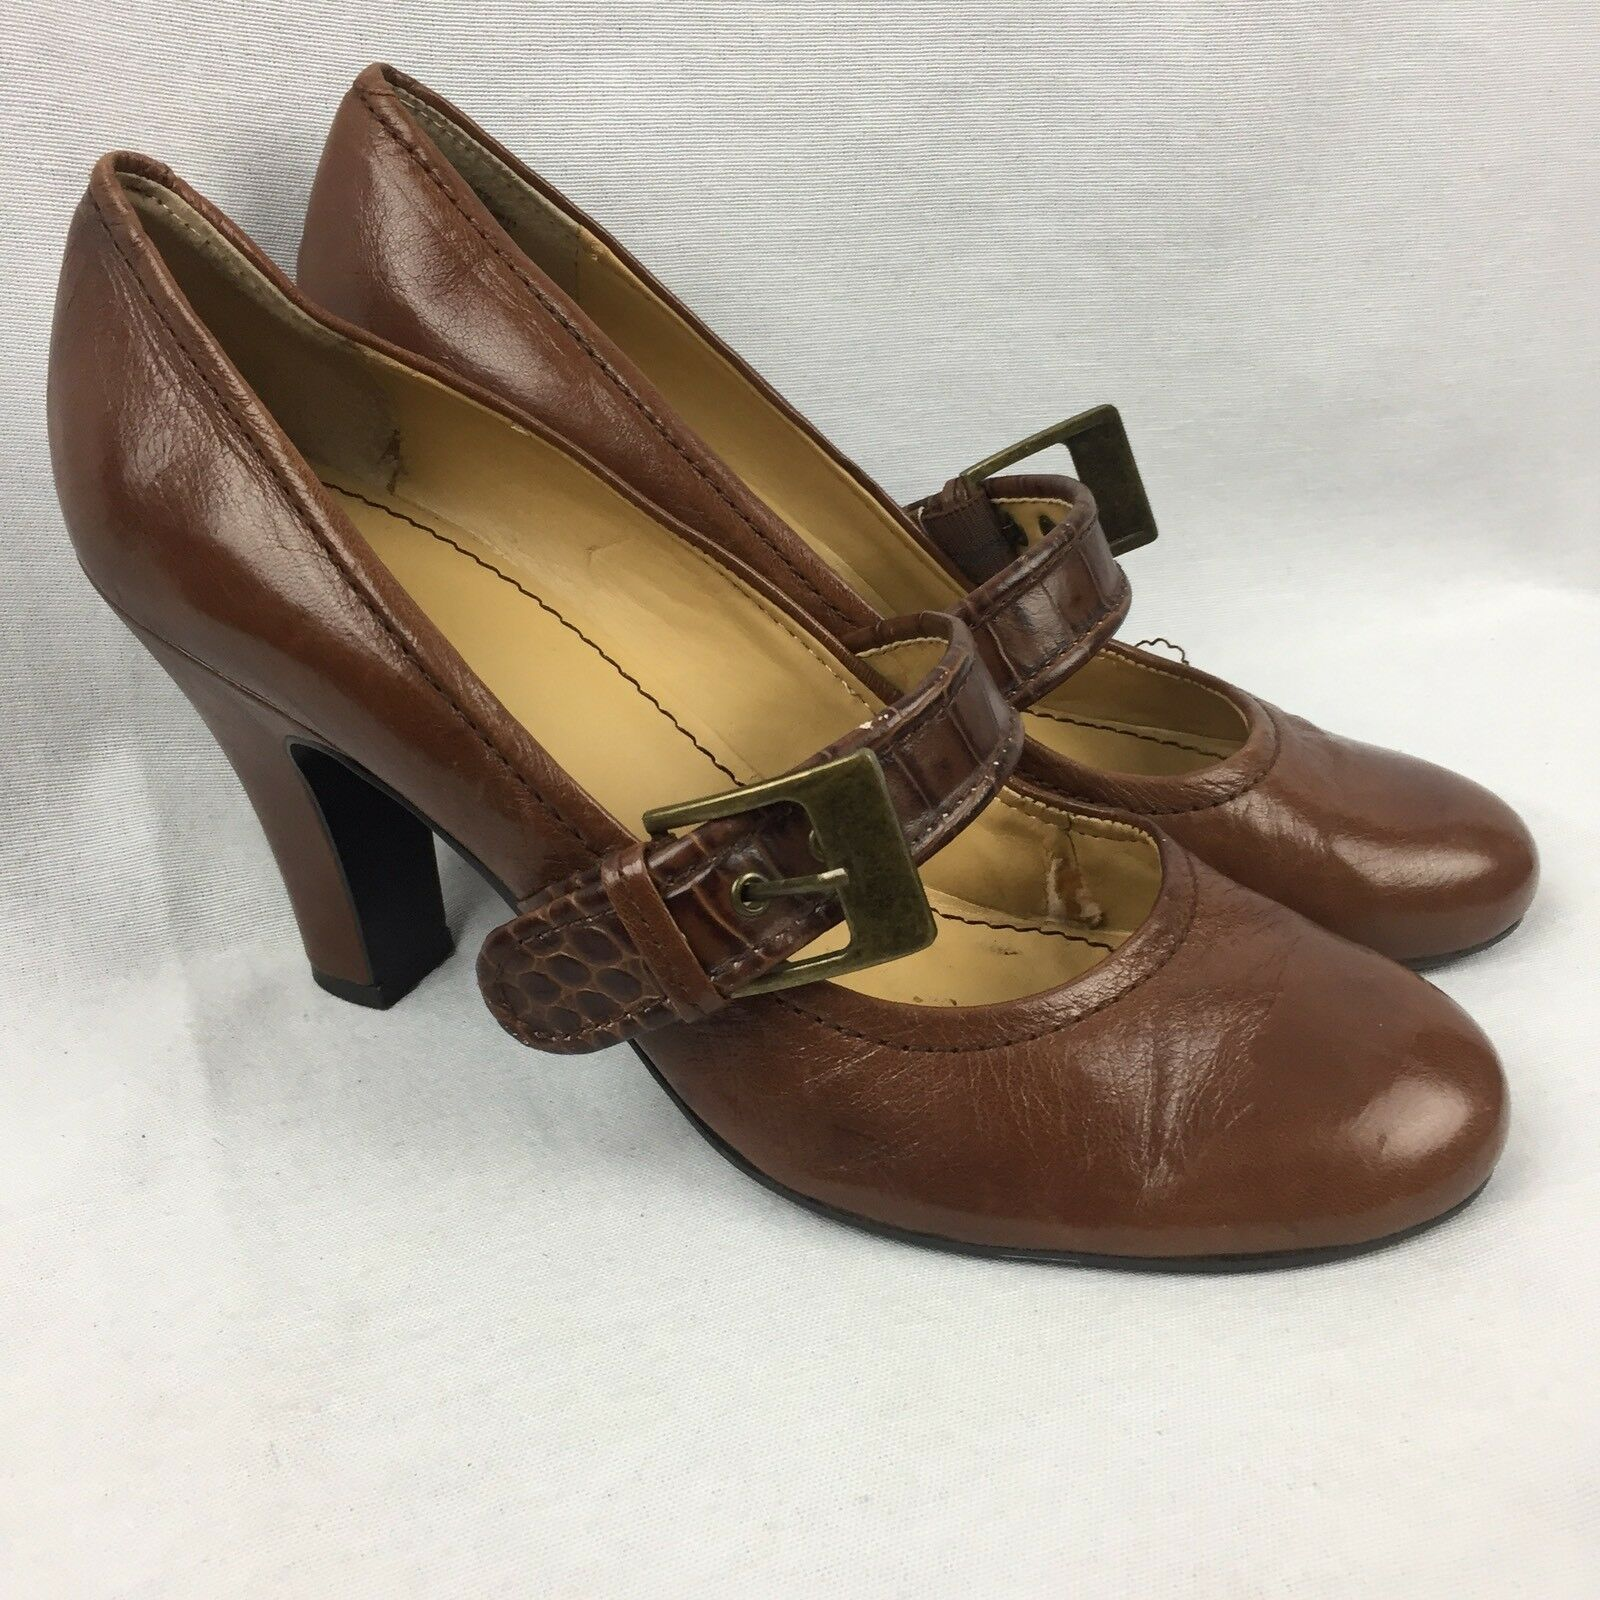 NINE WEST 'DELROY' Brown Leather 9.5 Mary Jane Buckle Size 9.5 Leather M 3.75 INCH HEEL 57359d